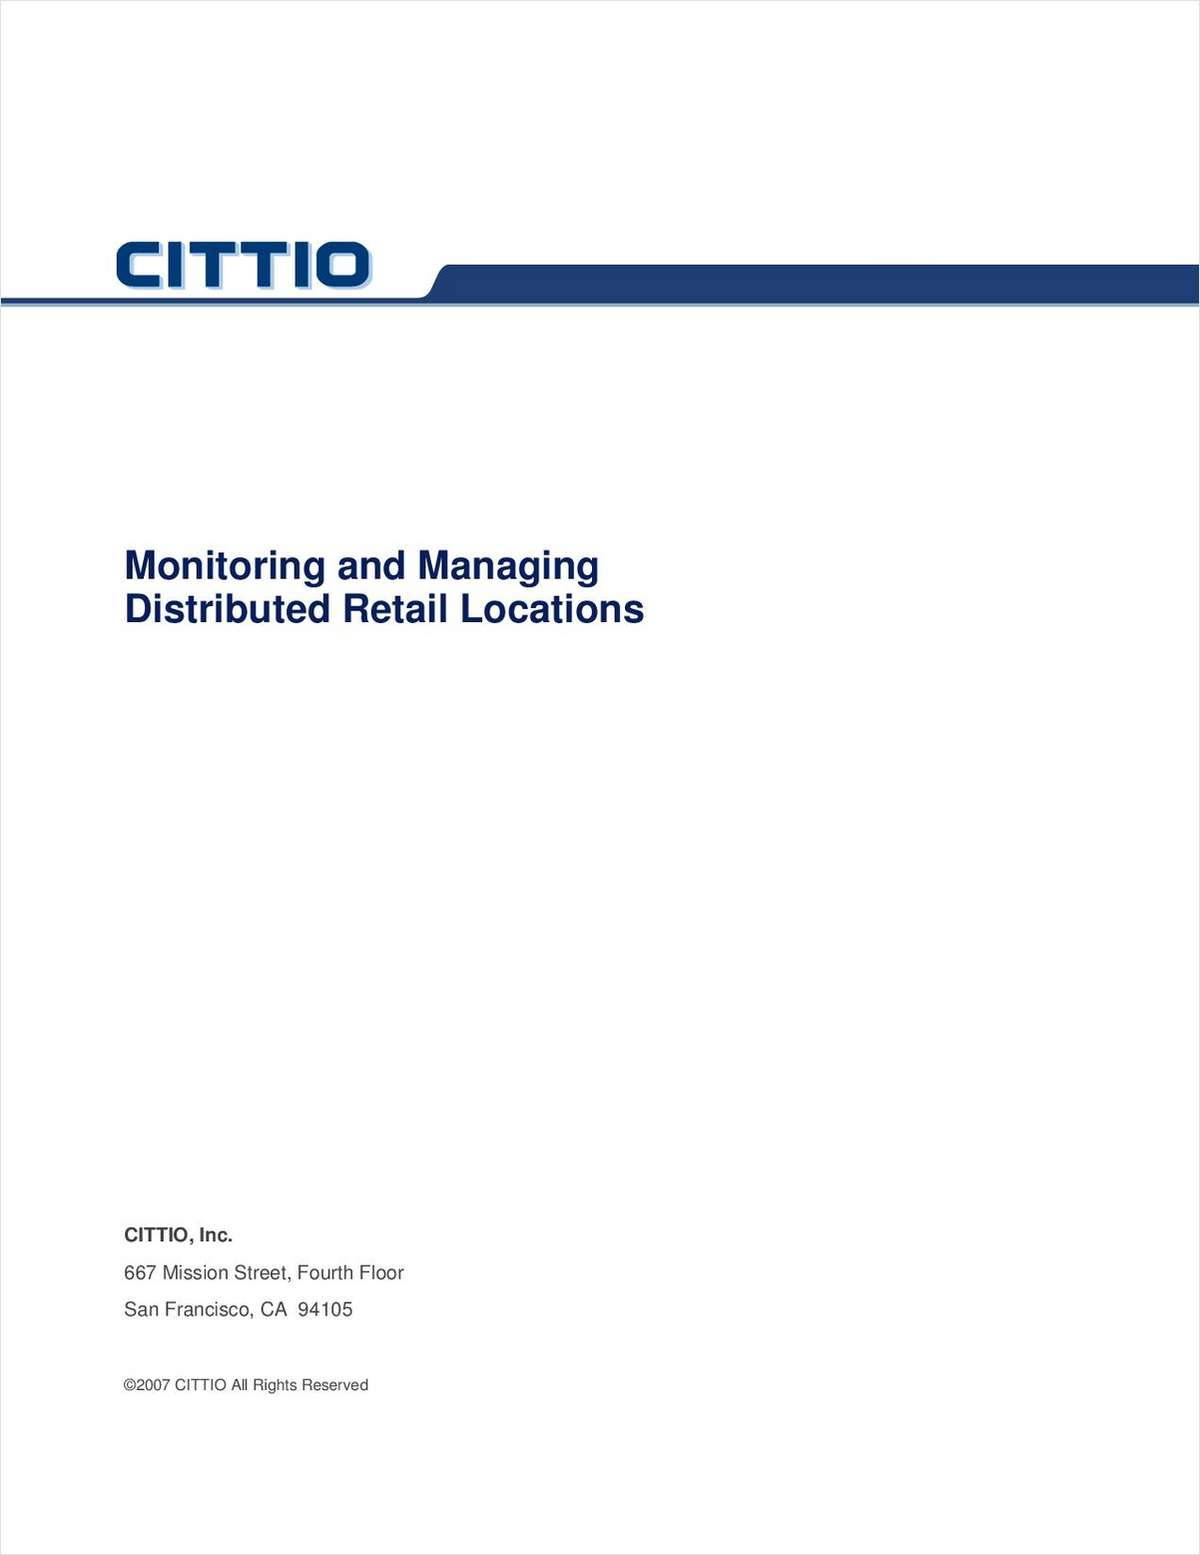 Monitoring and Managing Distributed Retail Locations